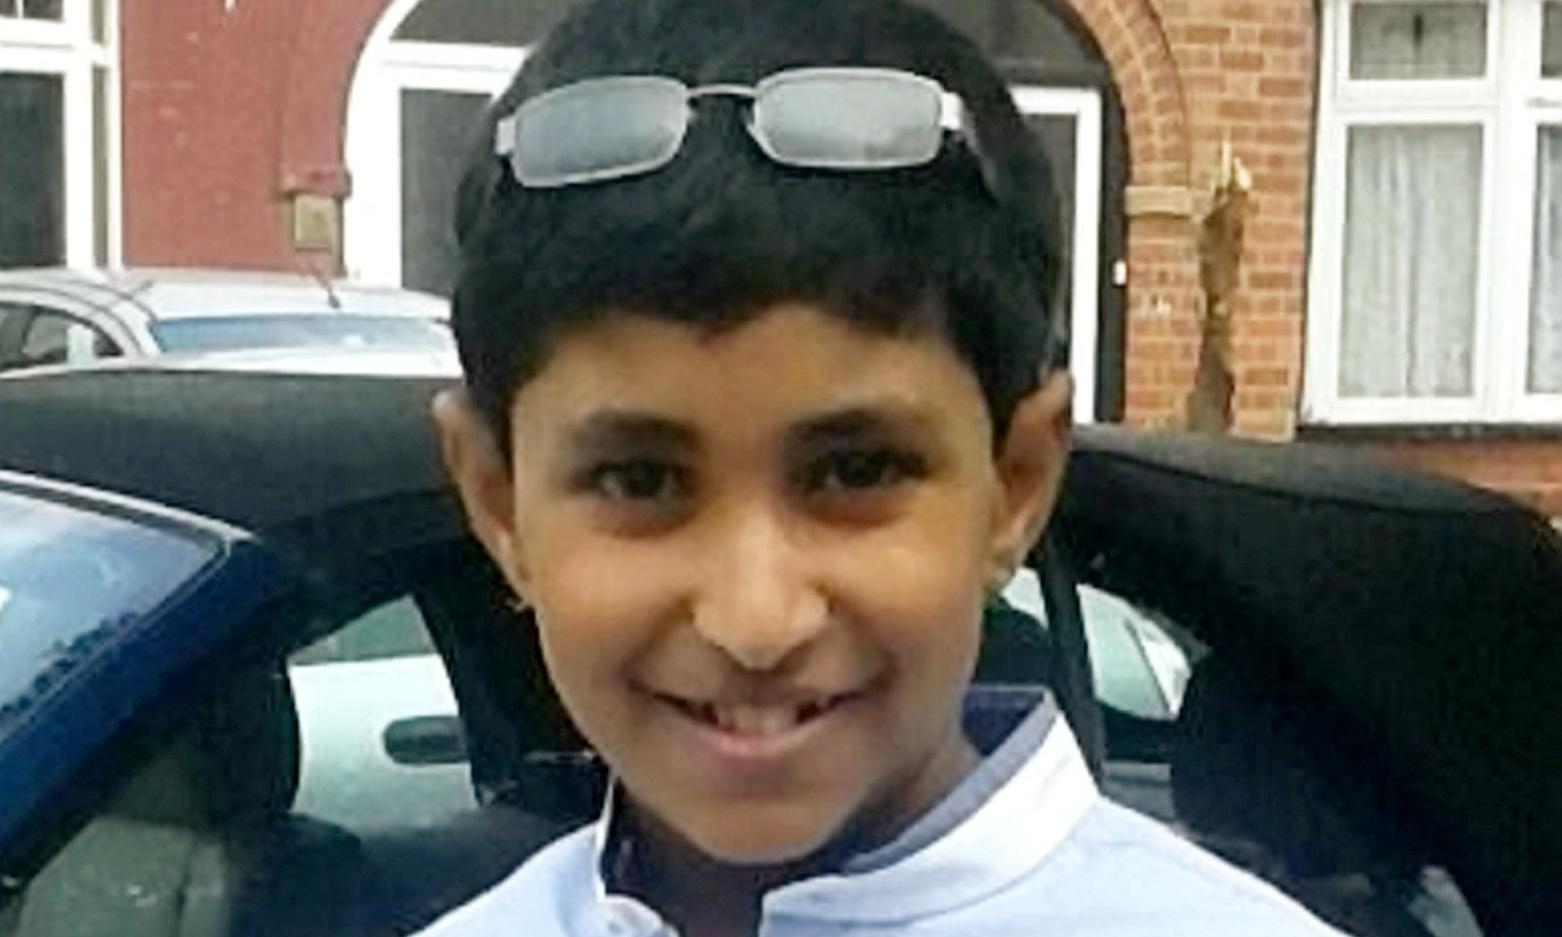 Paramedic who treated boy with cheese allergy panicked, inquest hears